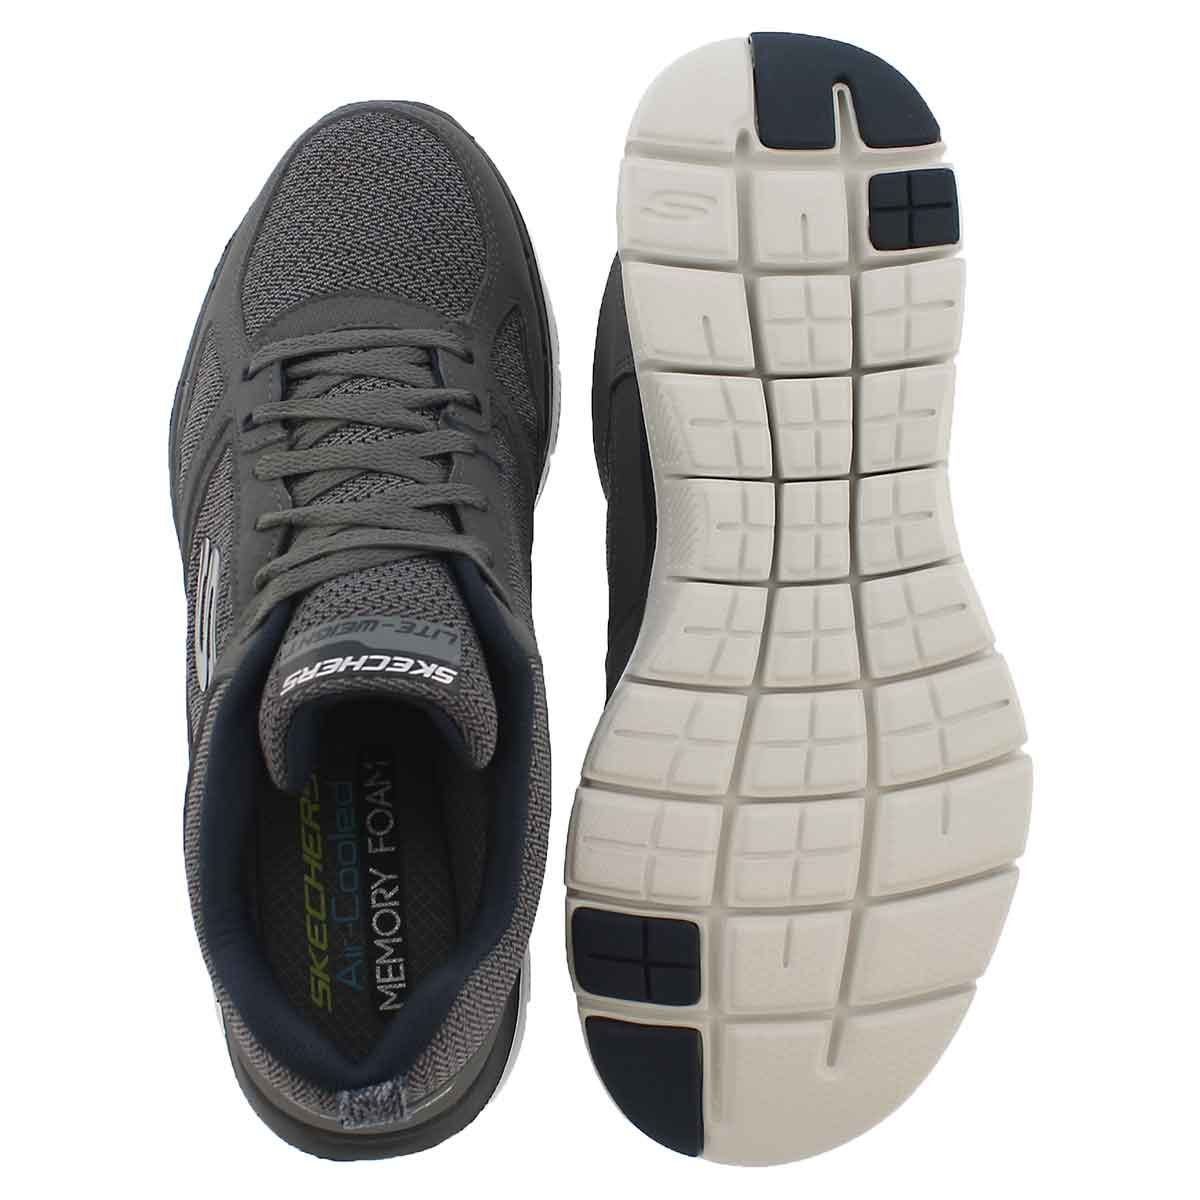 Mns Flex Advantage 2.0 charcoal runner